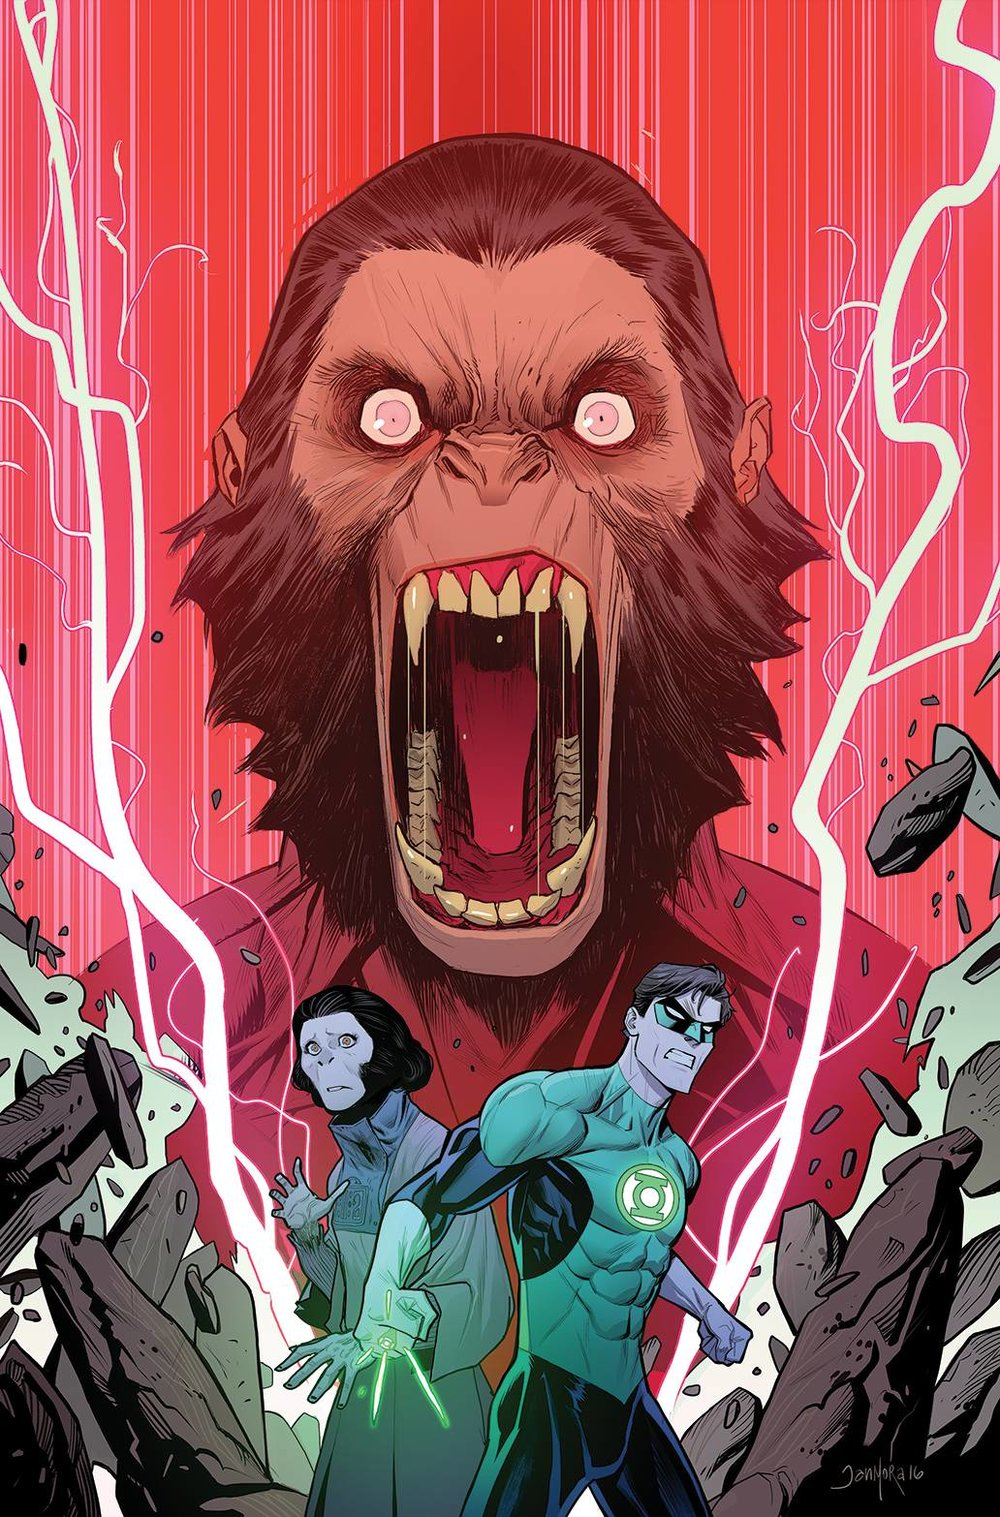 PLANET OF APES GREEN LANTERN 4 MAIN CVR.jpg